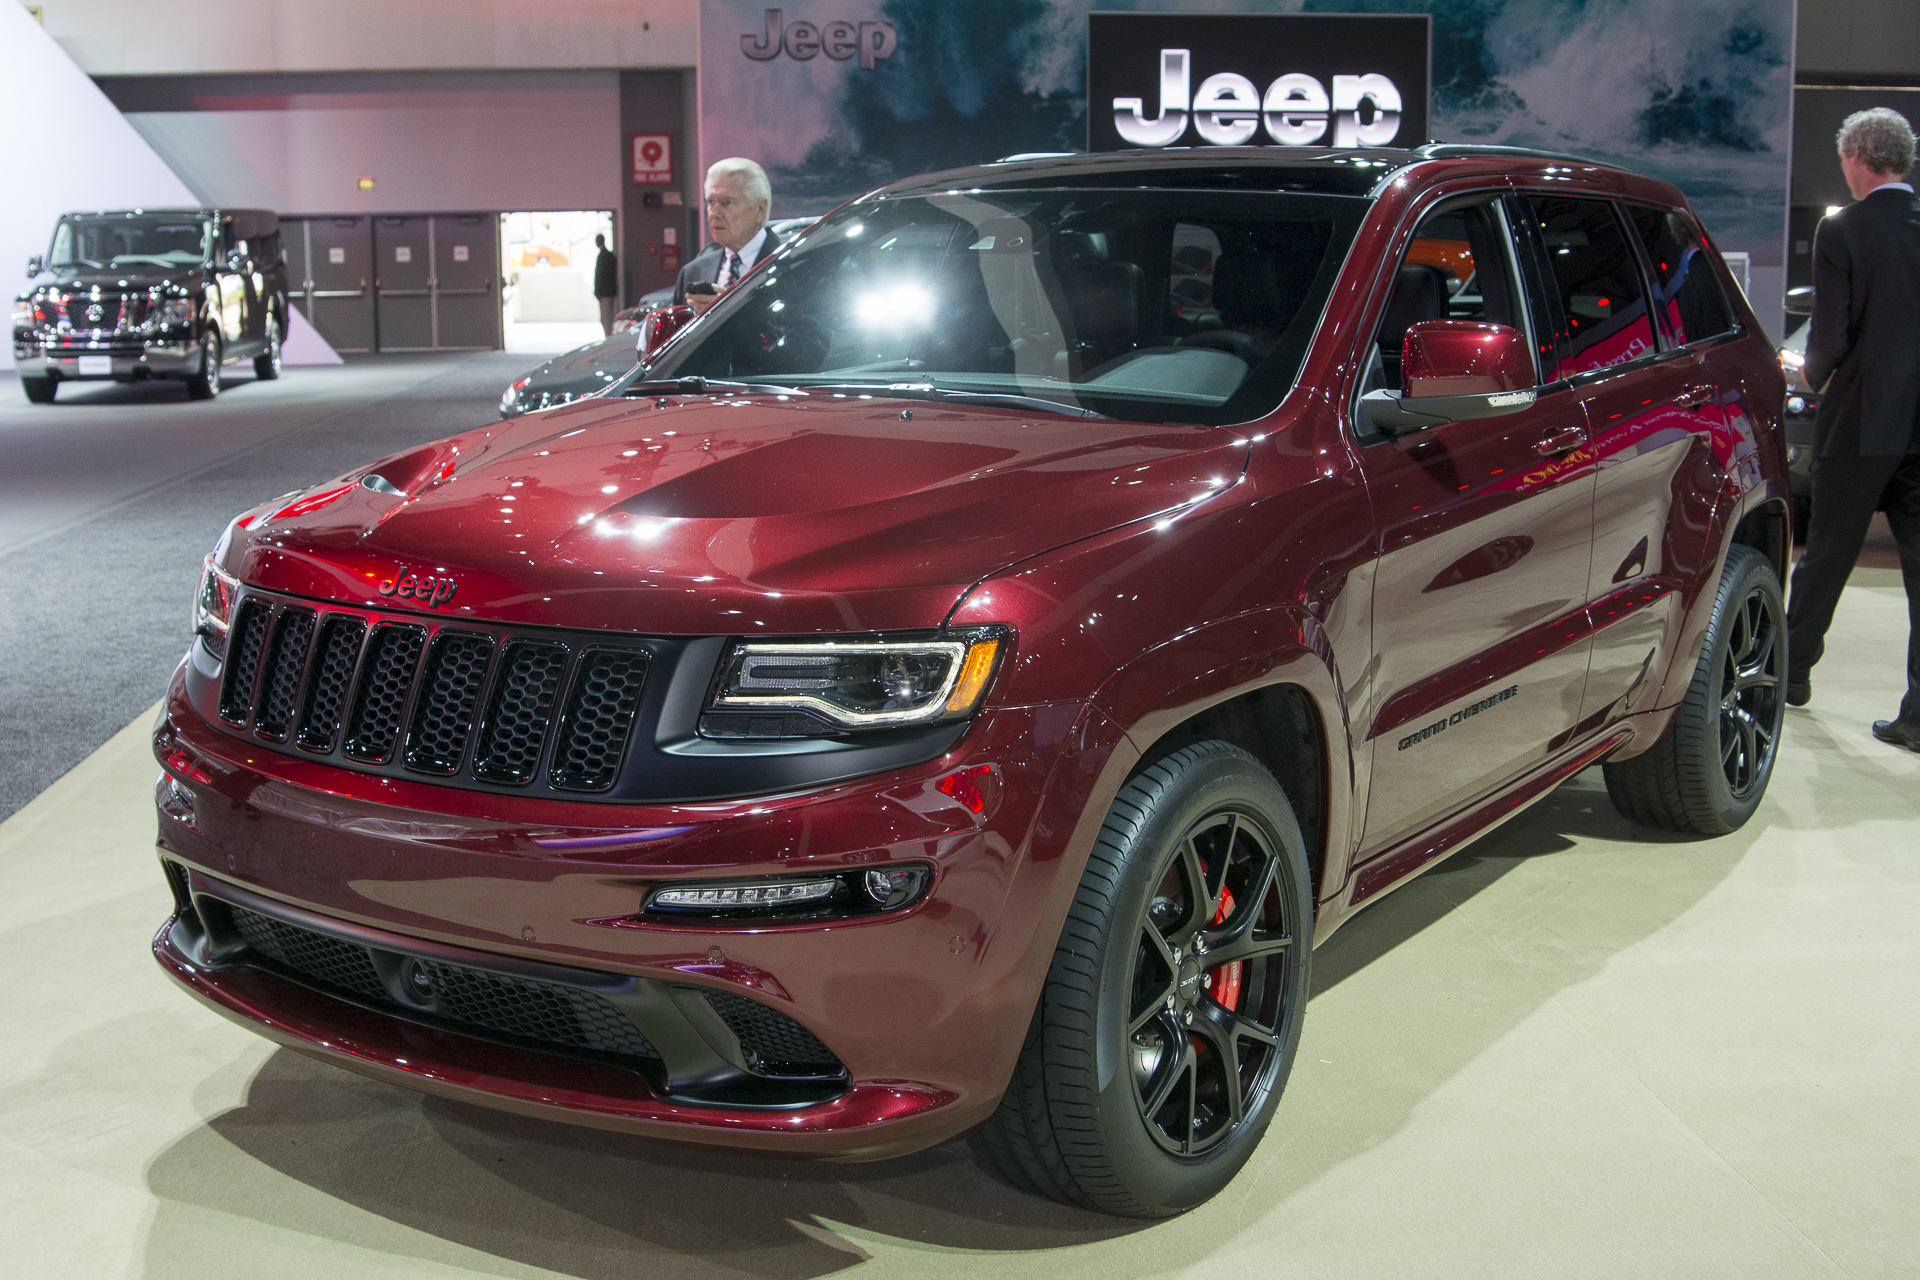 2016 jeep grand cherokee srt special editions jeep grand cherokee forum. Black Bedroom Furniture Sets. Home Design Ideas